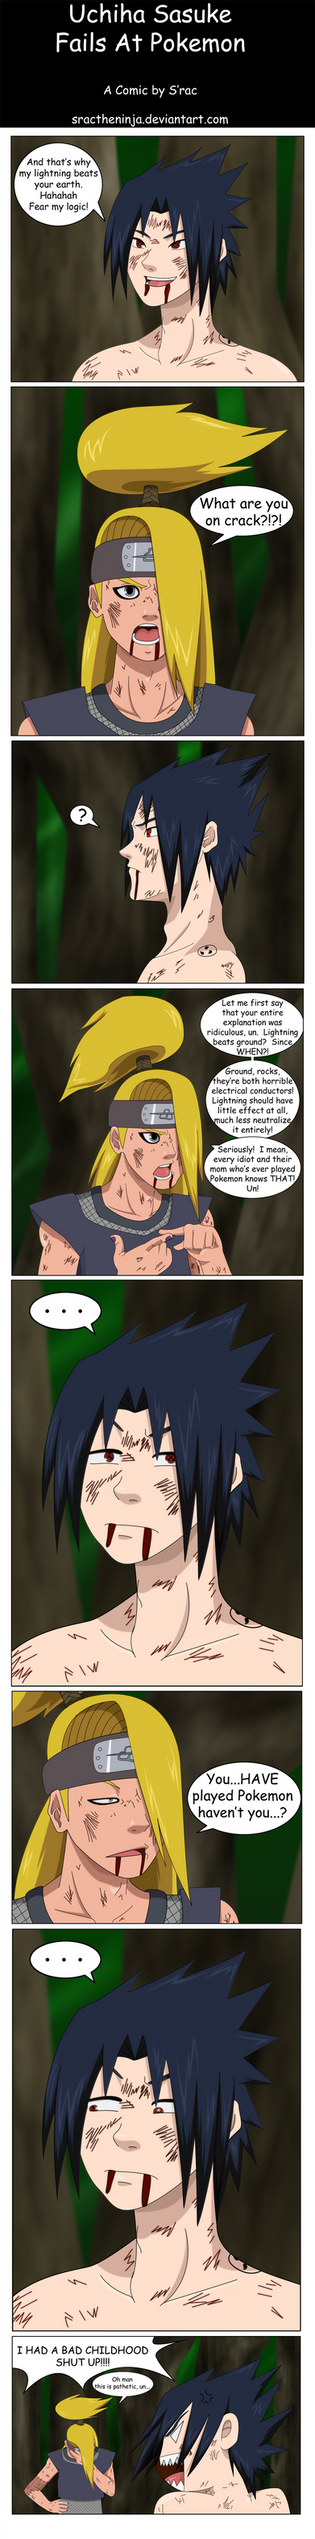 Naruto:Sasuke Fails At Pokemon by SractheNinja